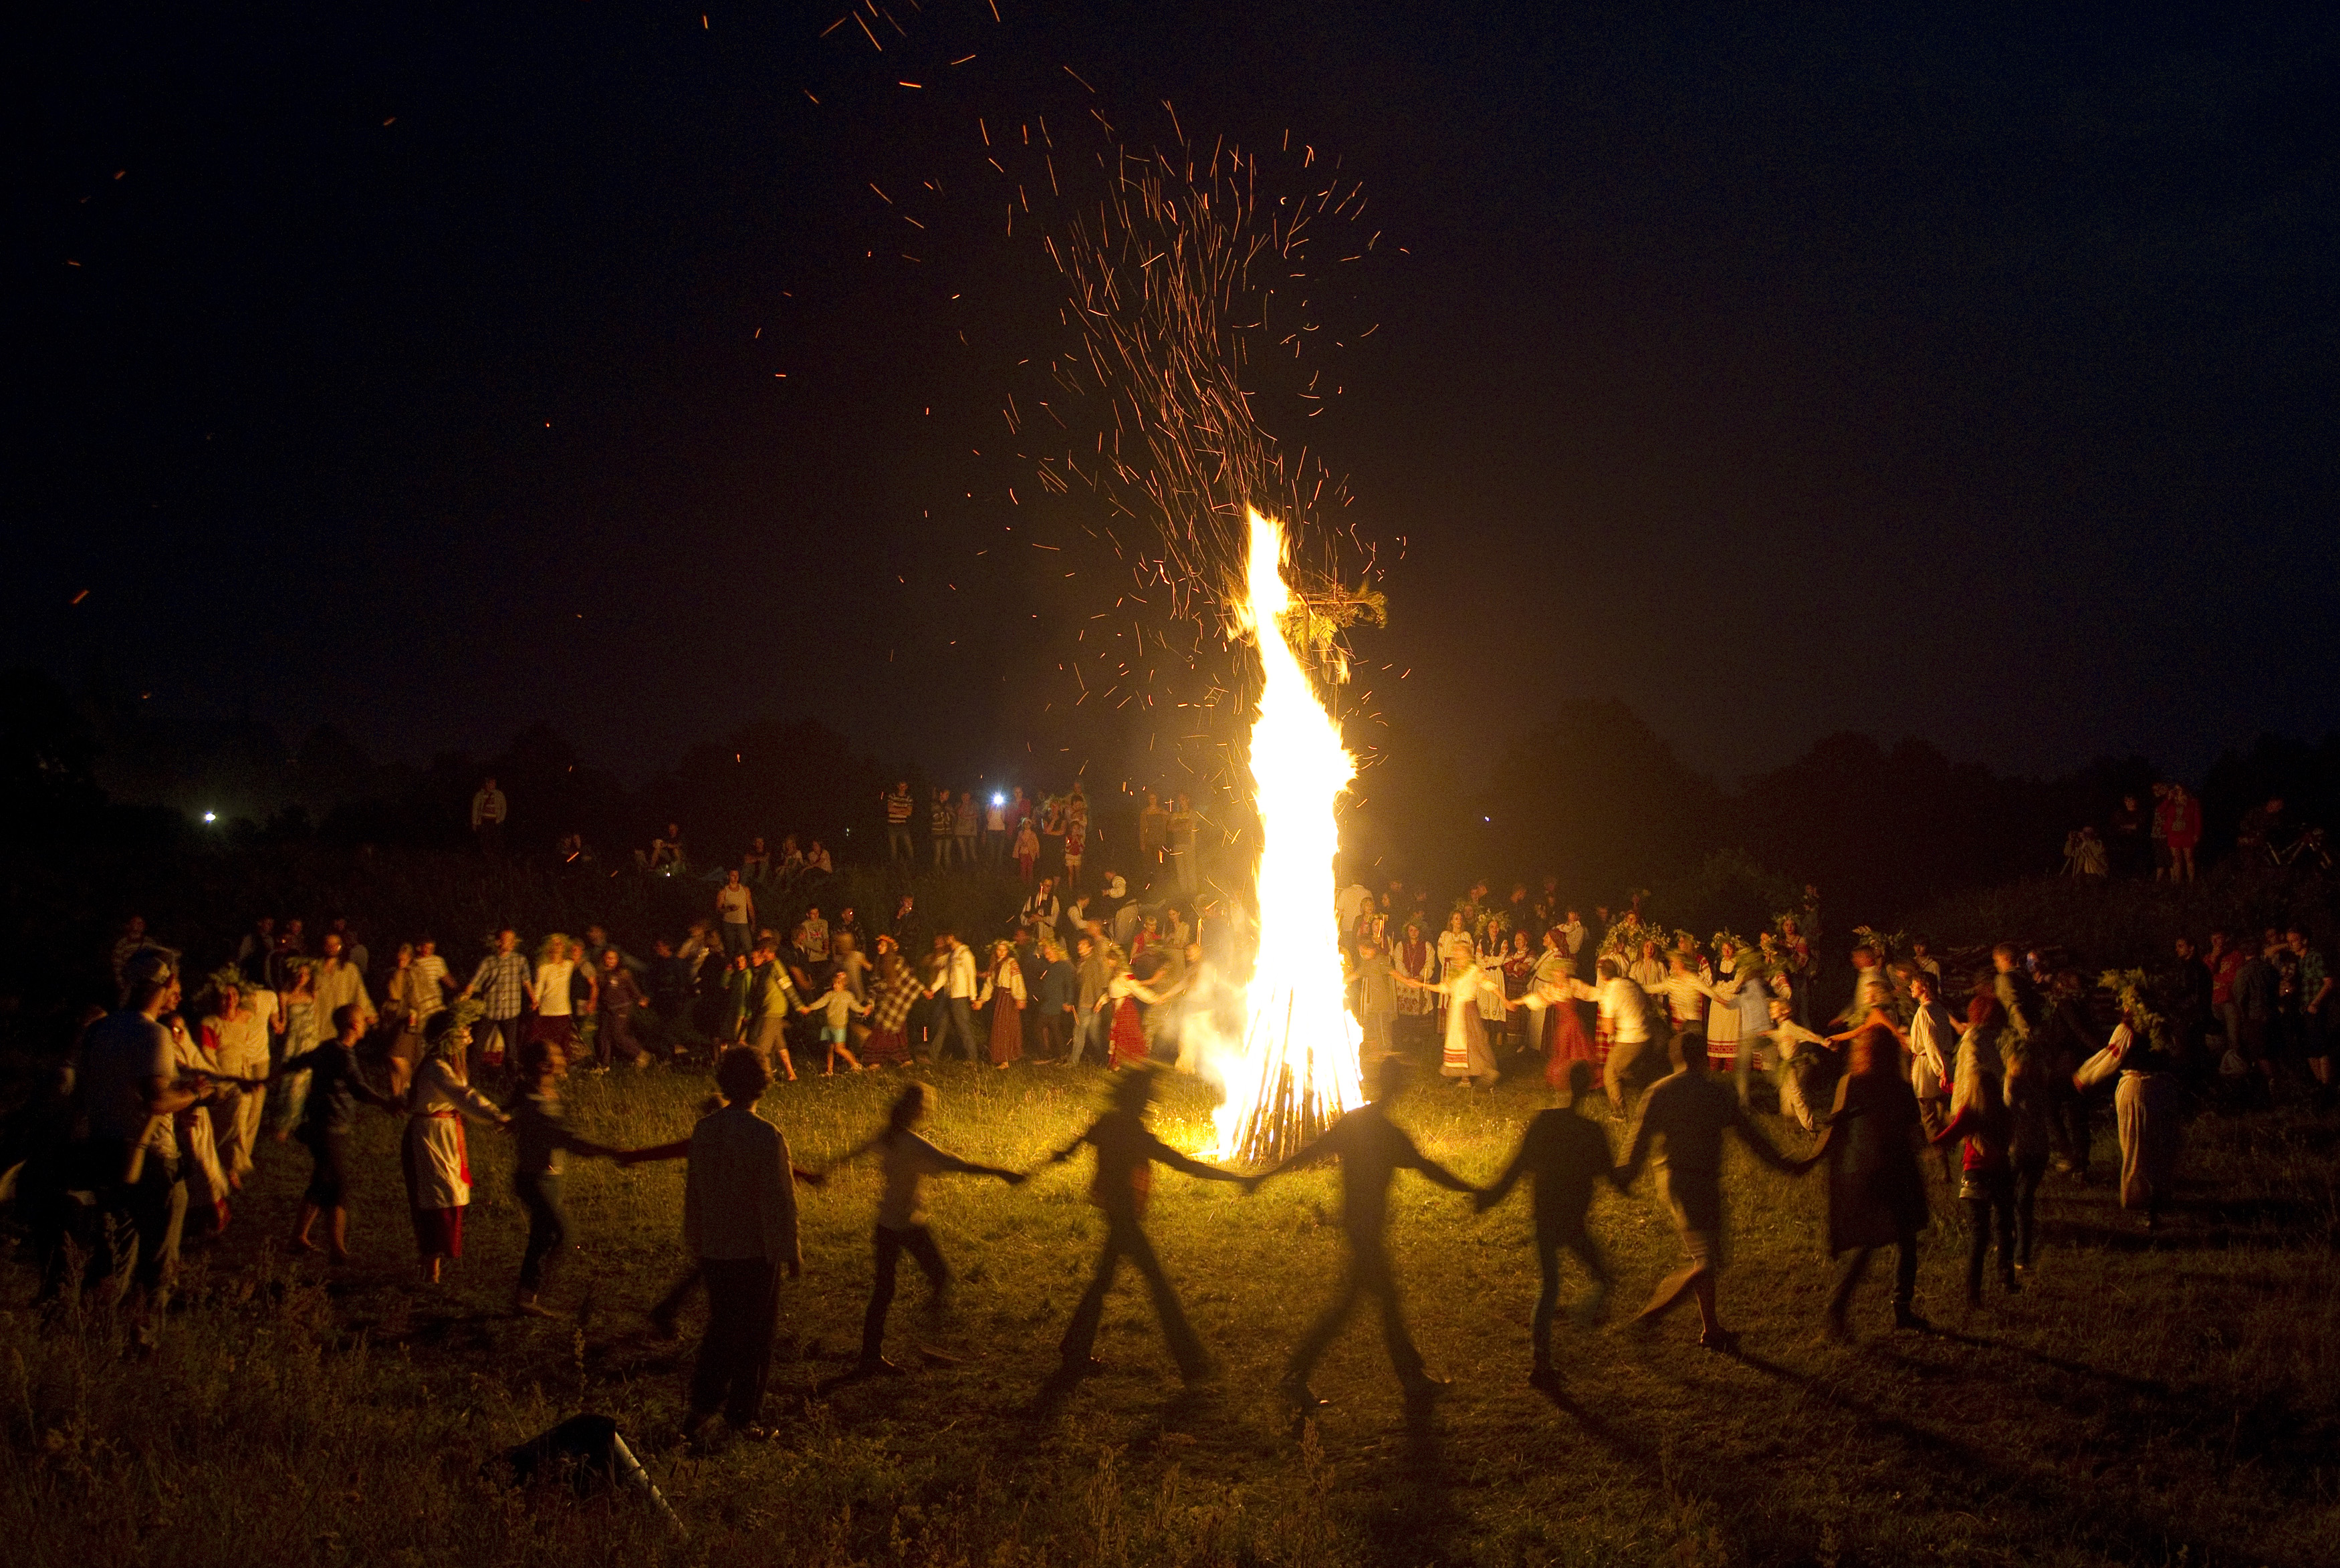 People take part in the Ivan Kupala festival near the town of Rakov, some 28 miles west of Minsk, Belarus on June 22, 2013. The traditional festival celebrates the summer solstice with overnight festivities as they believe it will purge them of their sins and make them healthier.